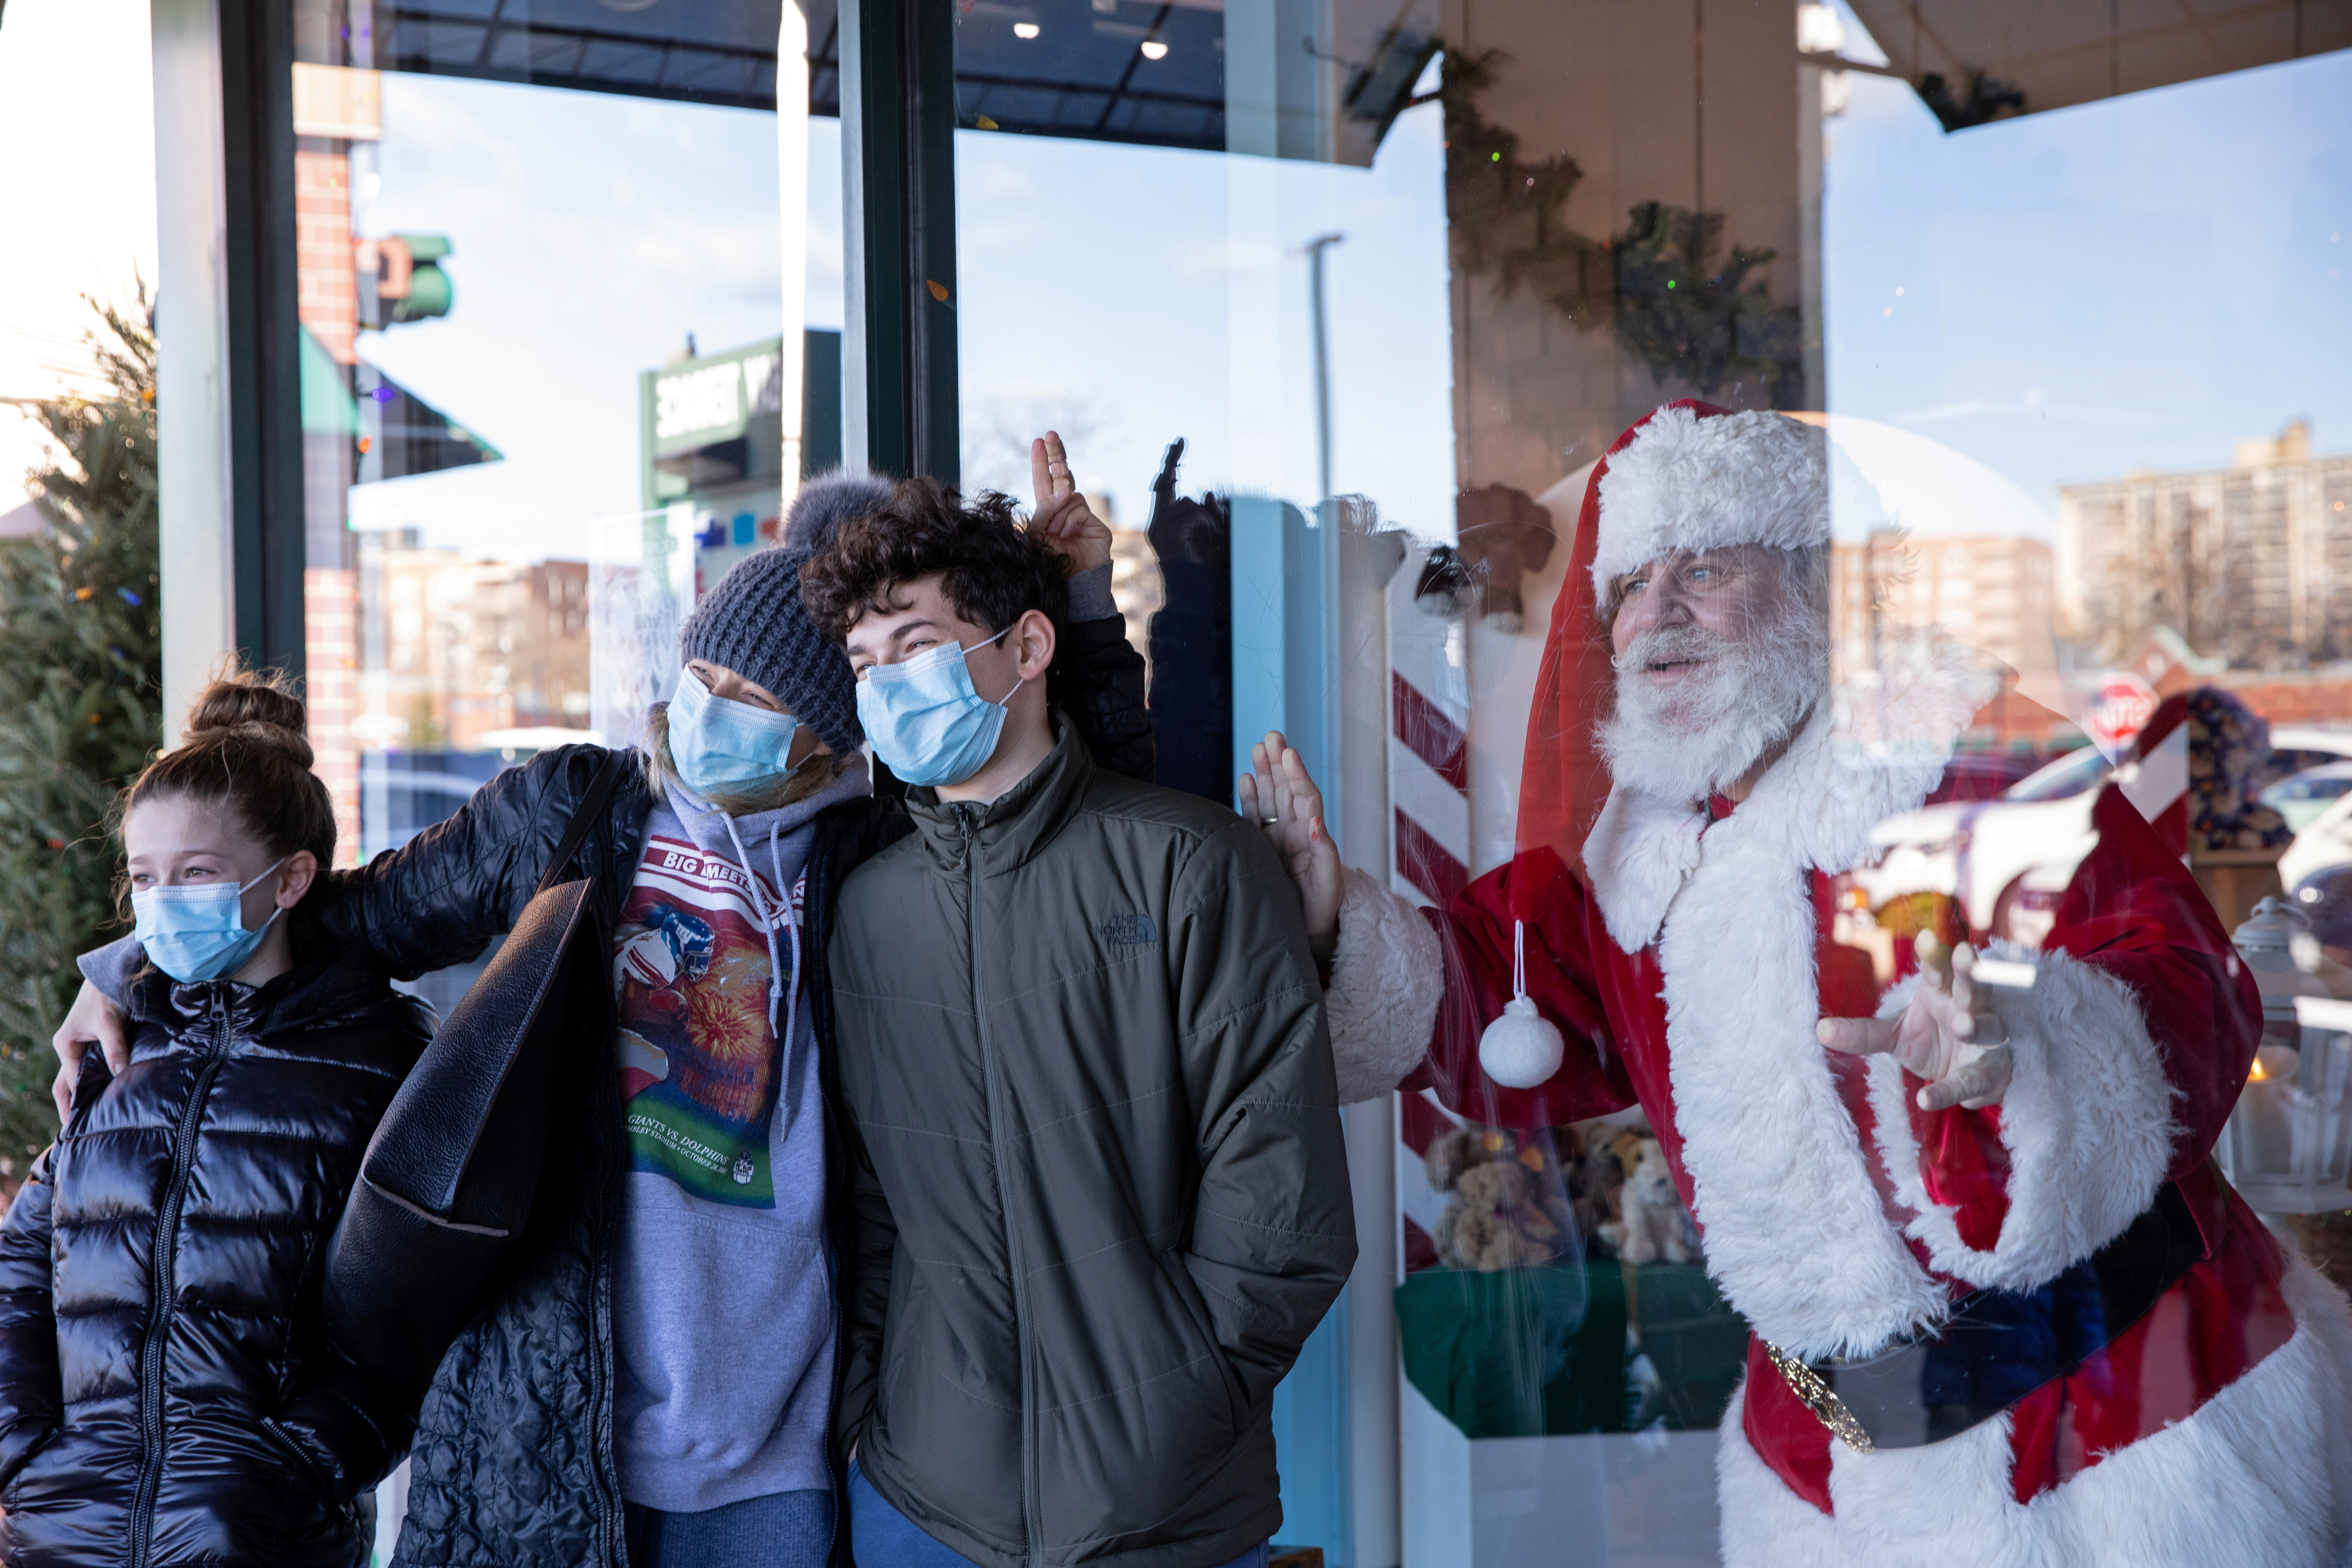 Dana Friedman, a trial lawyer who has spent 6 months of each year growing out his beard for his annual appearance as Santa Claus since 2001, poses for a portrait with a family through a window at the Bay Terrace Shopping Center in New York City, U.S., December 6, 2020. REUTERS/Caitlin Ochs